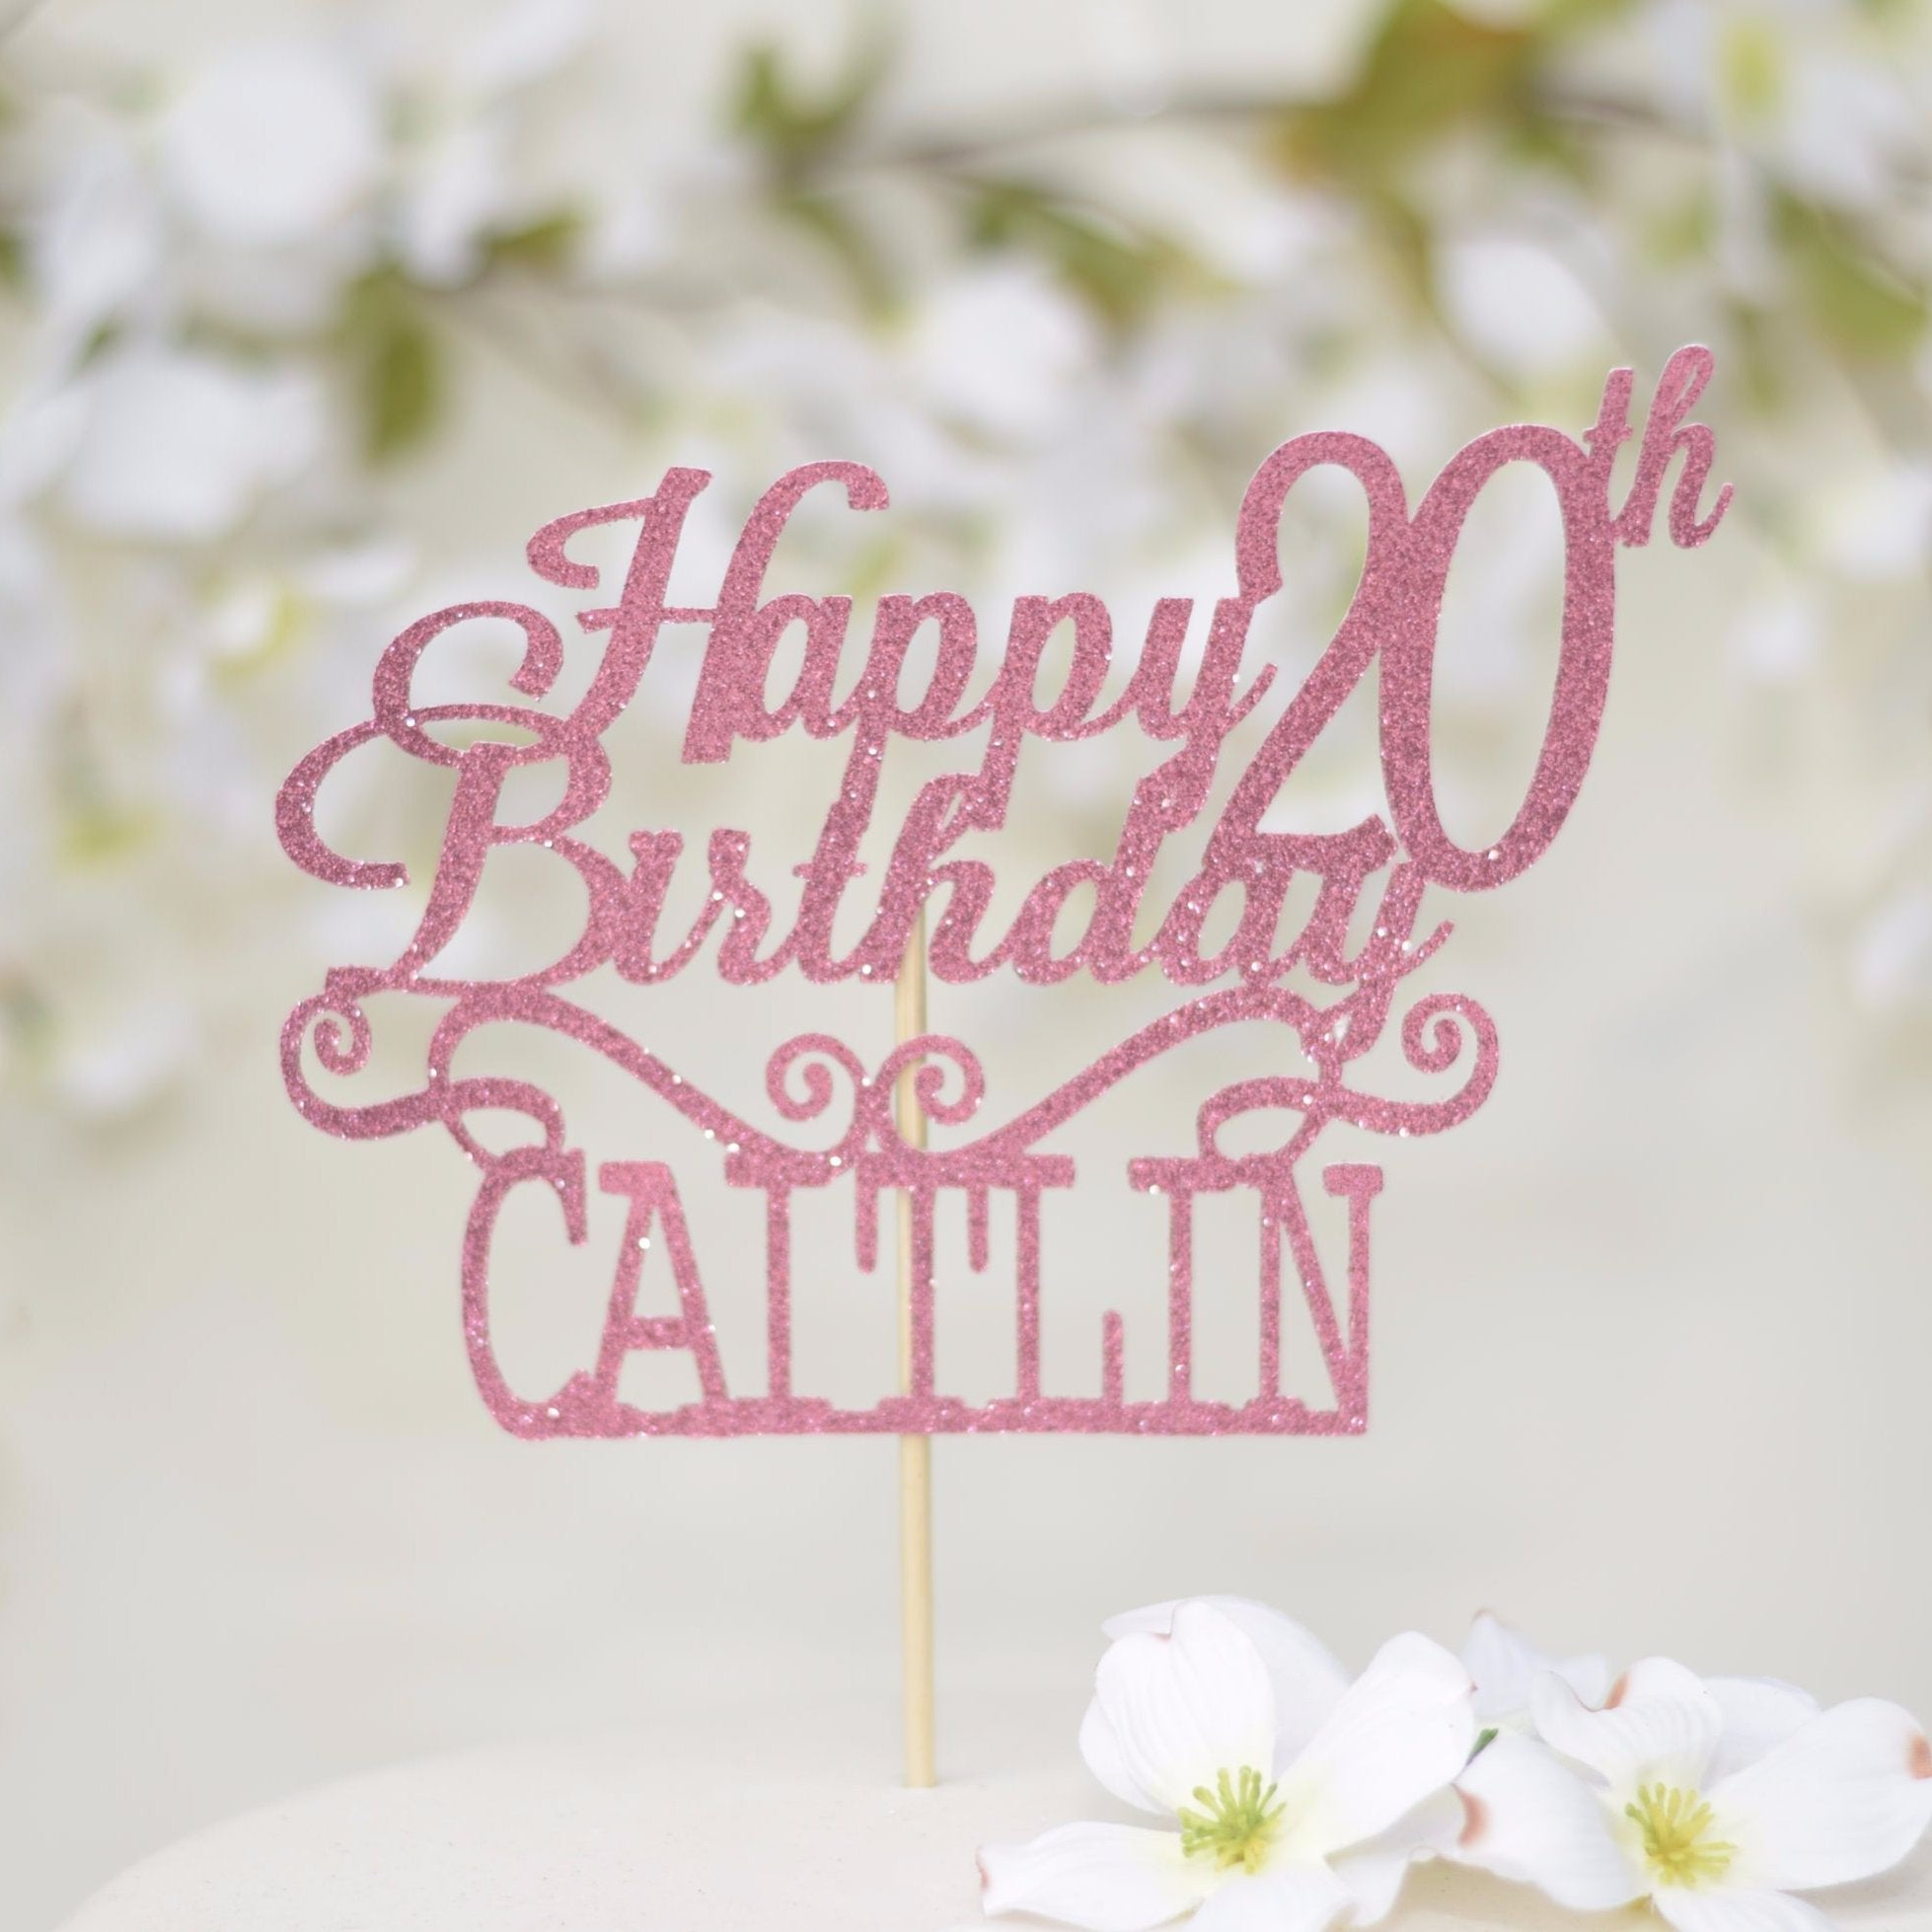 Happy 20th Birthday Caitlin In Pink Sparkly Font